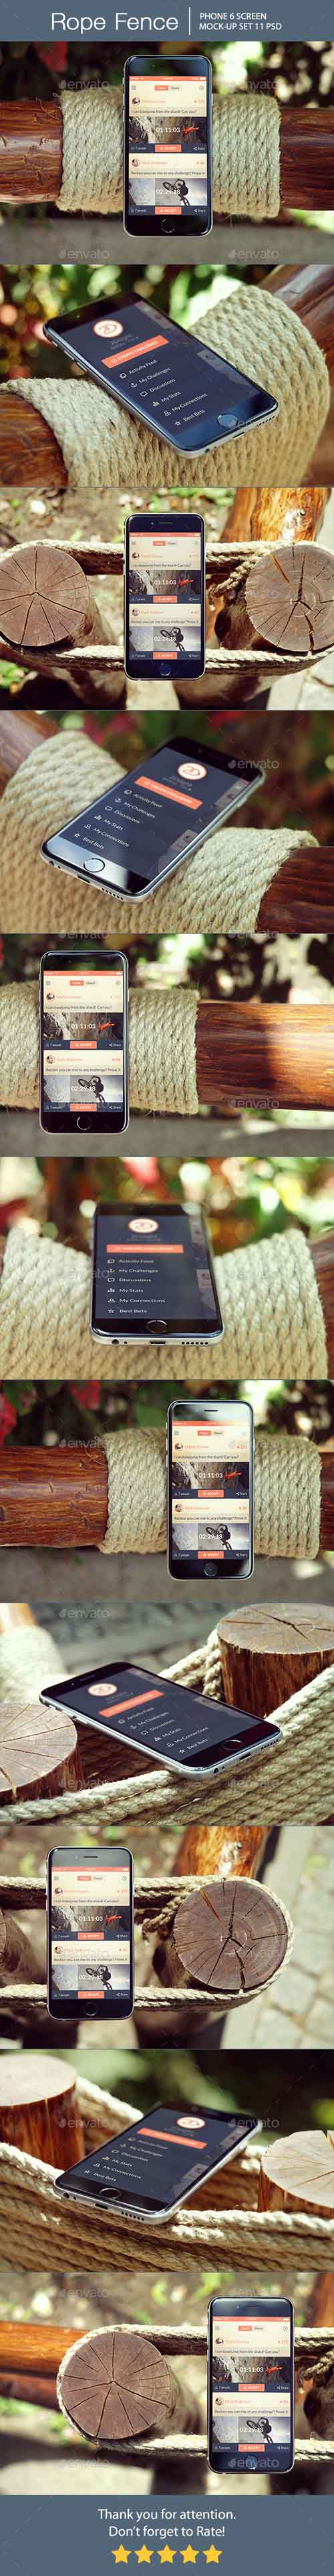 Rope Fence iPhone 6 Mockup 14164235